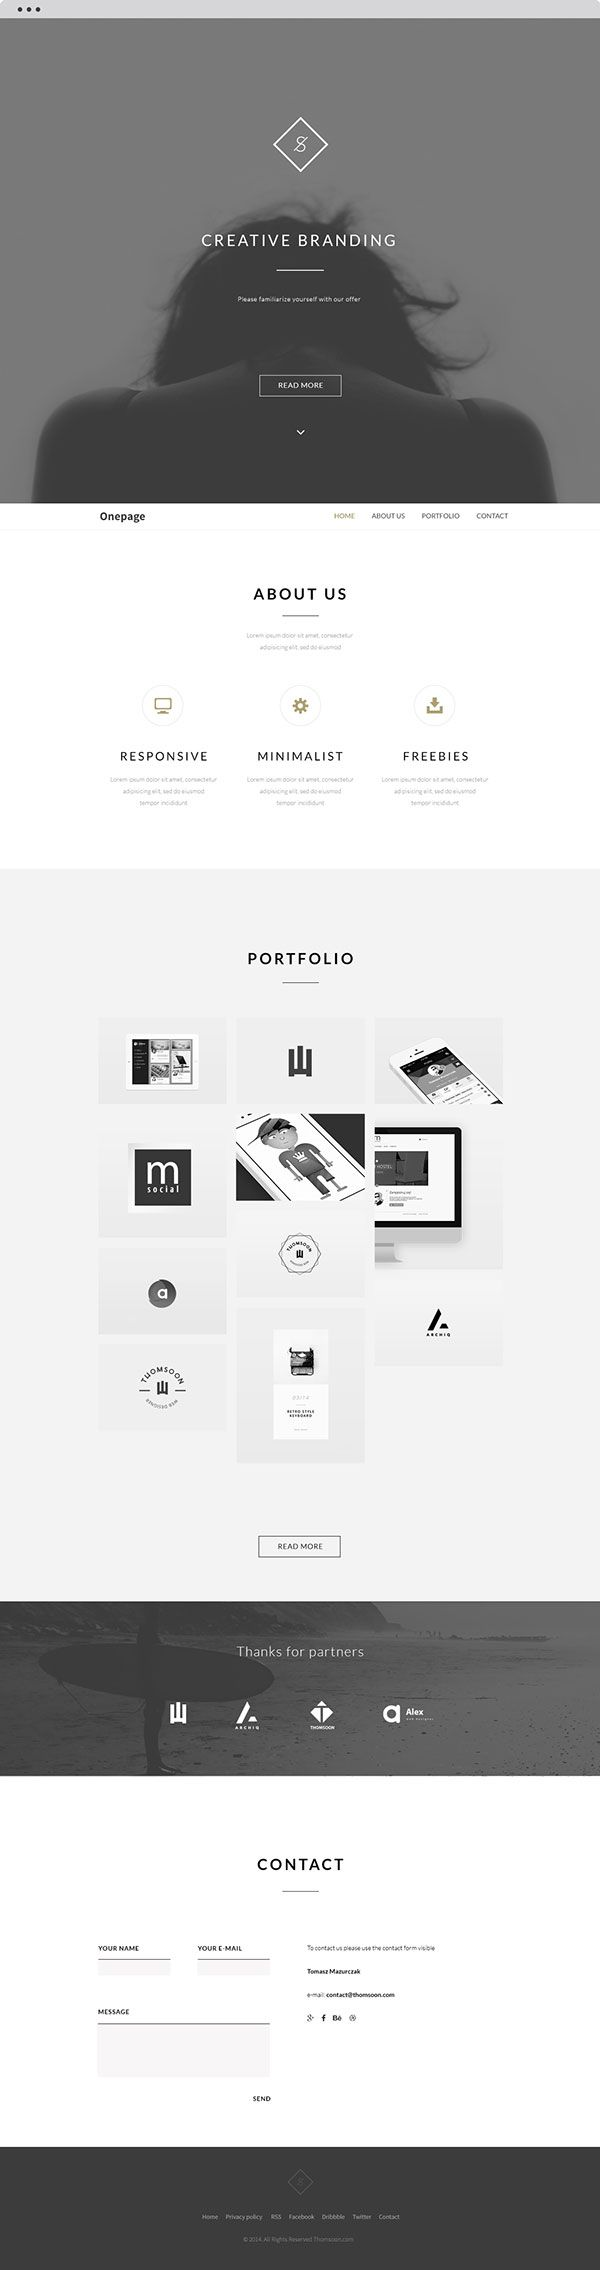 This is a clean, modern, landing page site template. It has a fully responsive design. This is Freebies Landing Page Templates created by Tomasz Mazurczak.